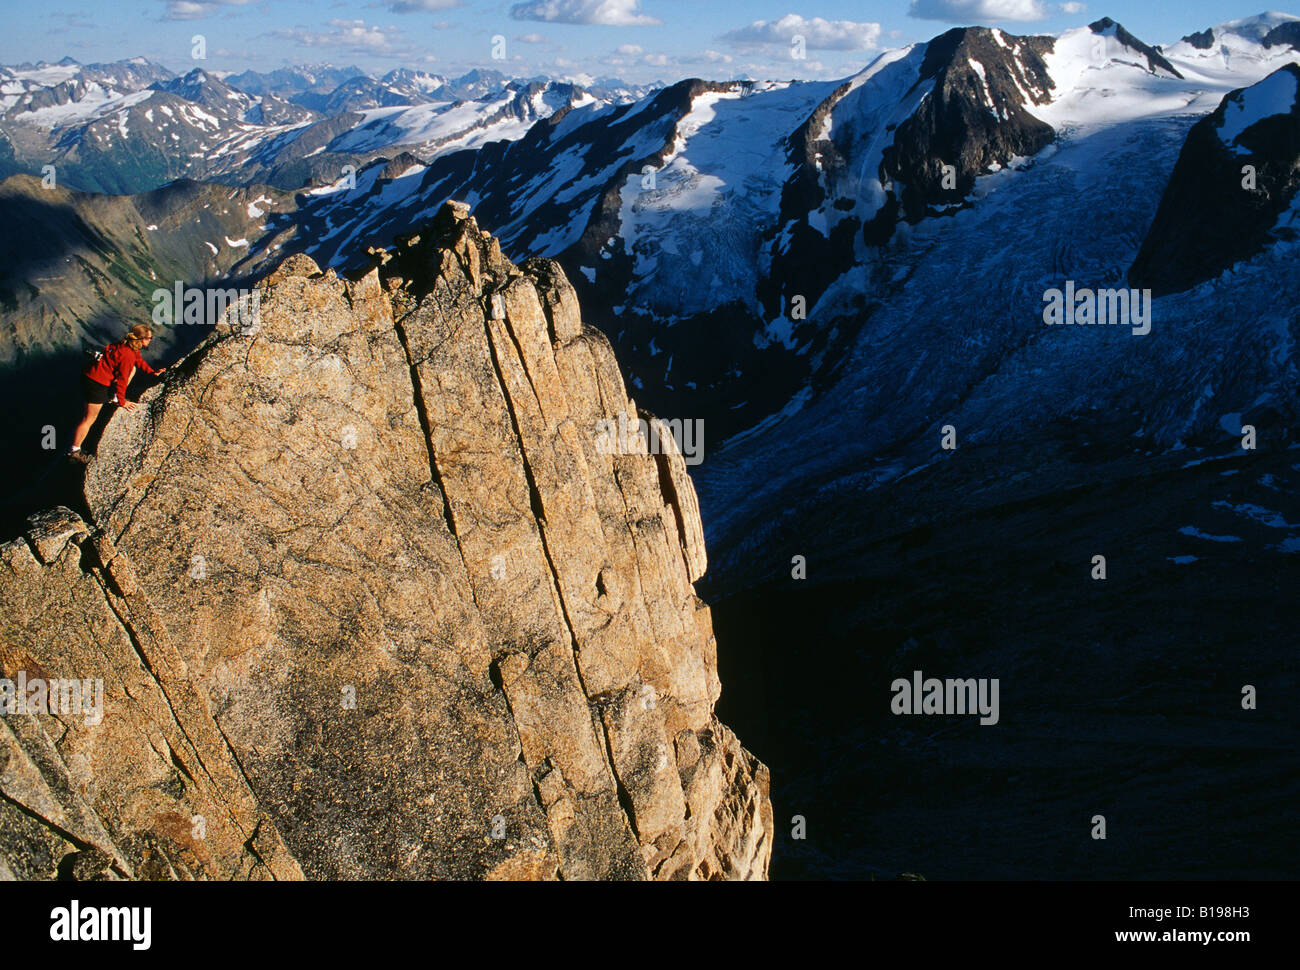 A women on the summit ridge of Eastpost Spire, Bugaboo Provincial Park, British Columbia, Canada. - Stock Image